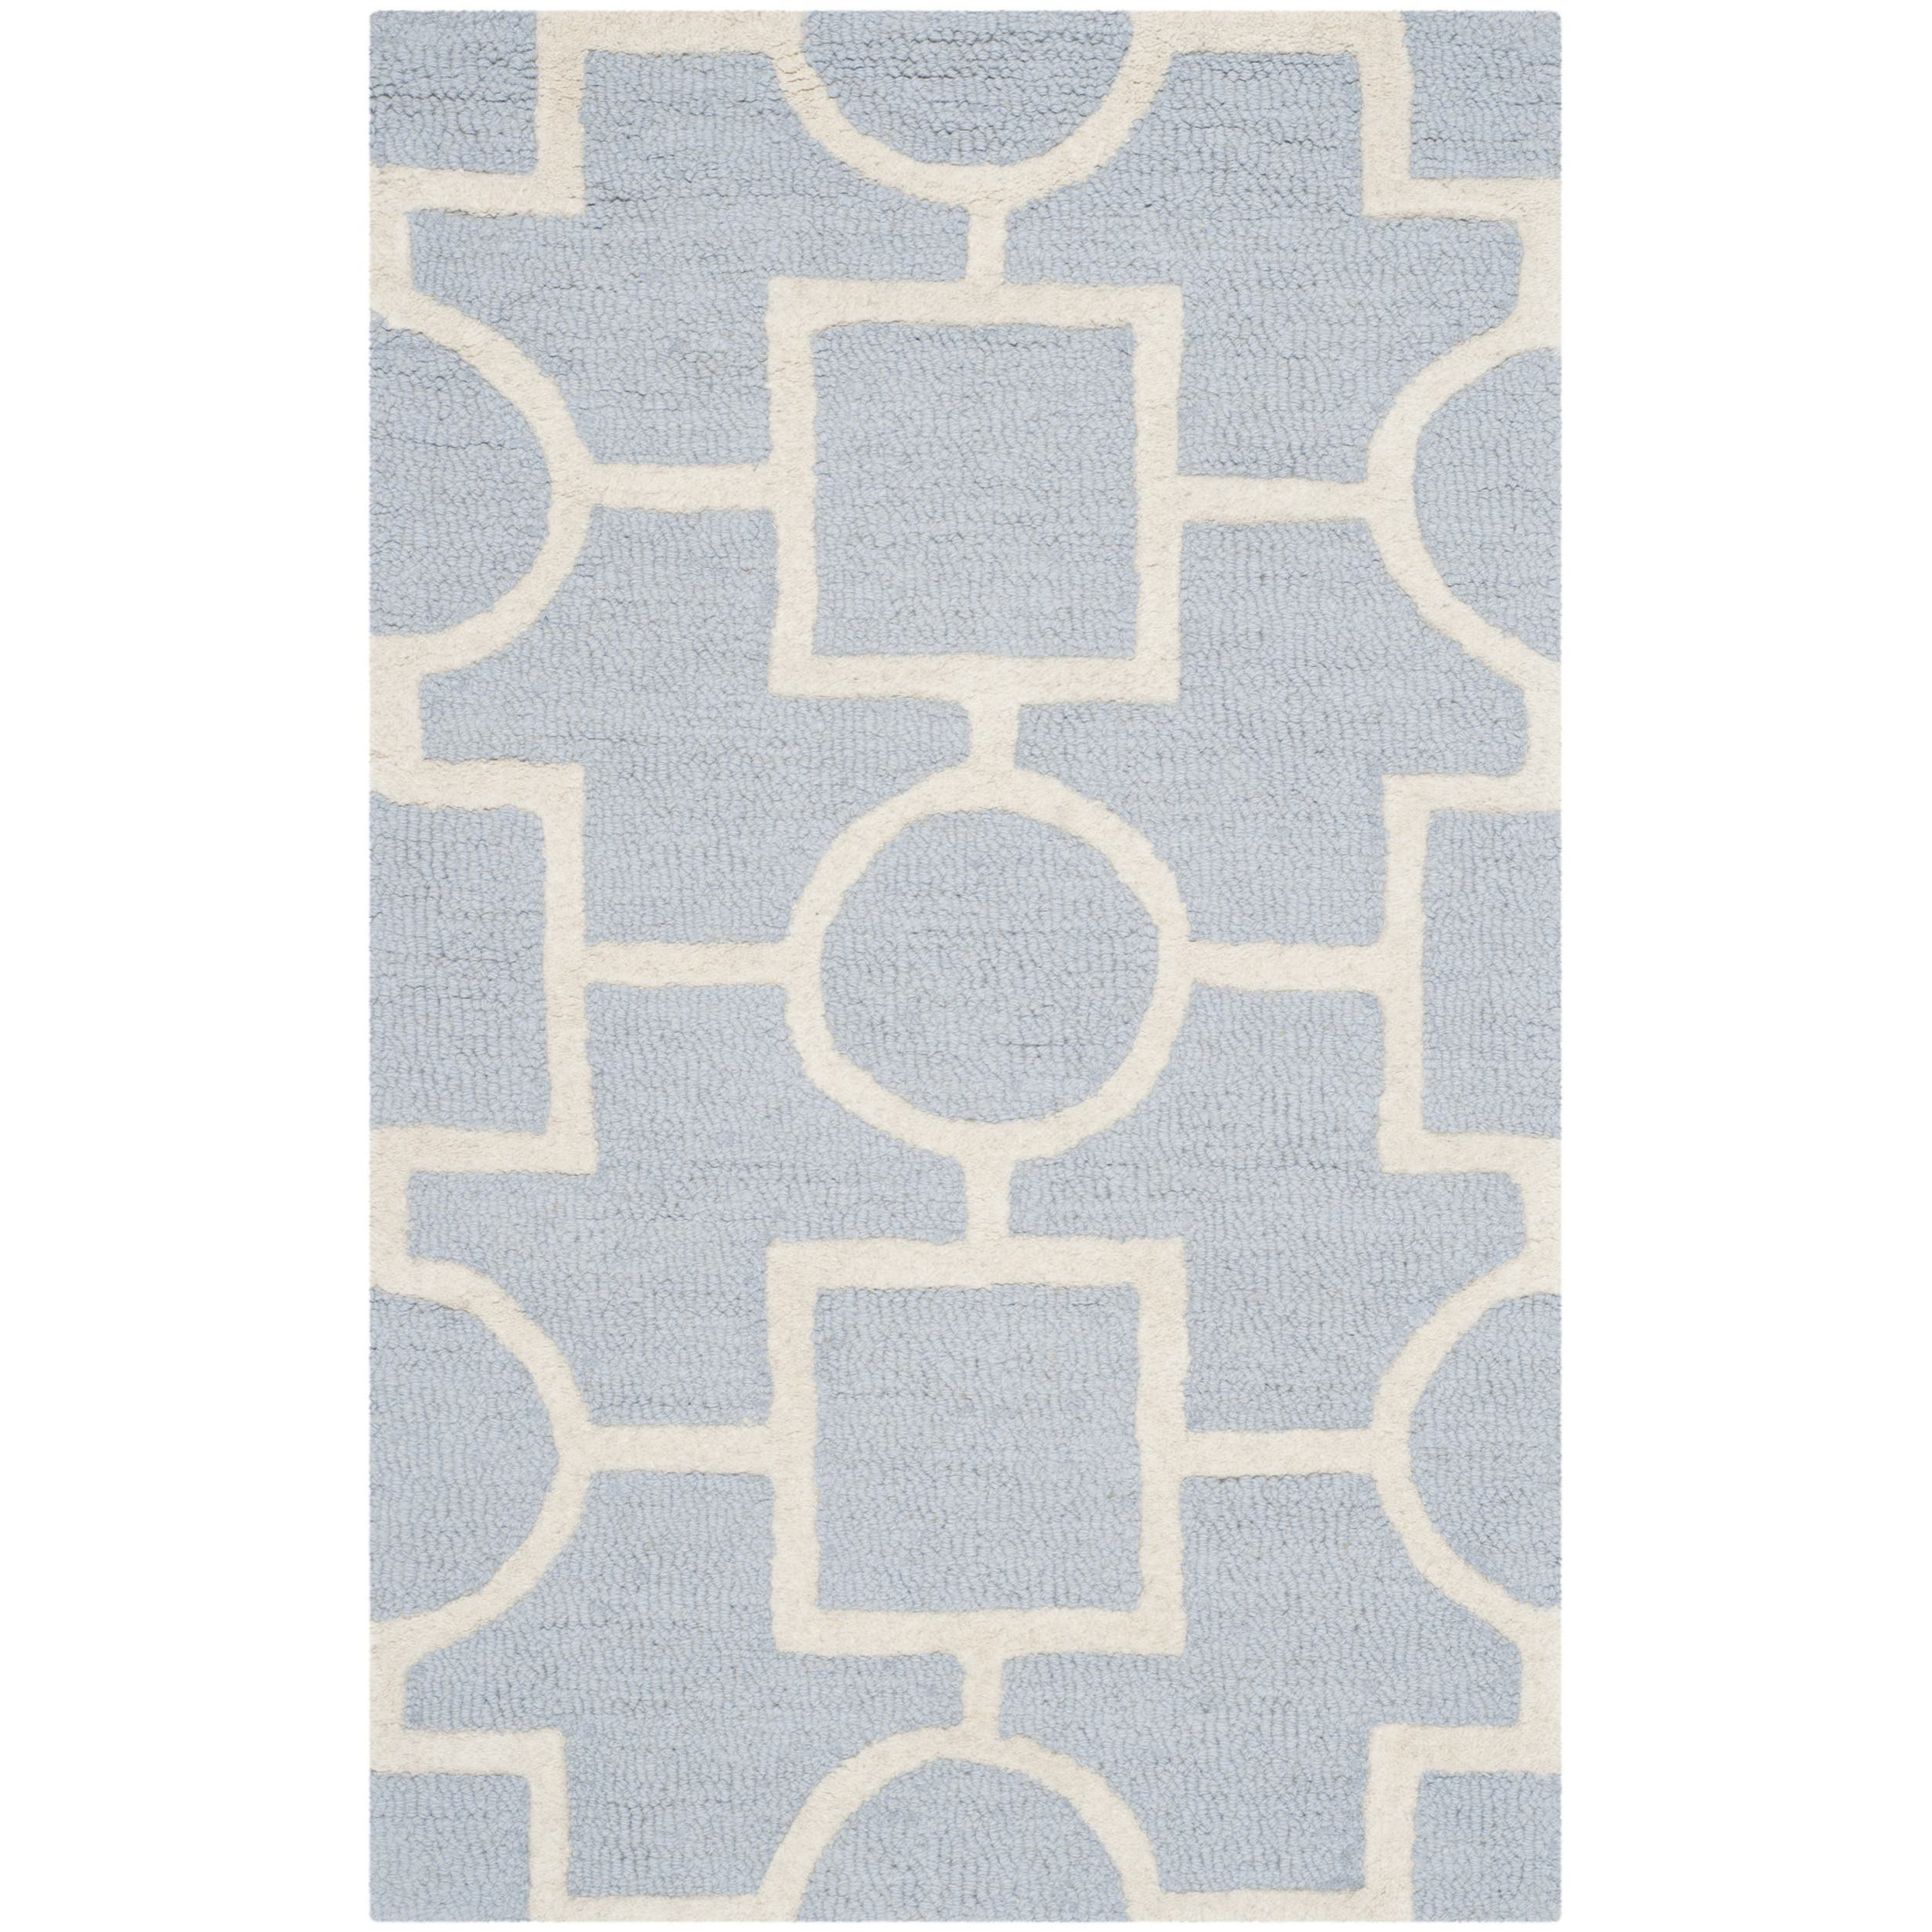 Buy Accent Rugs Online At Overstock.com